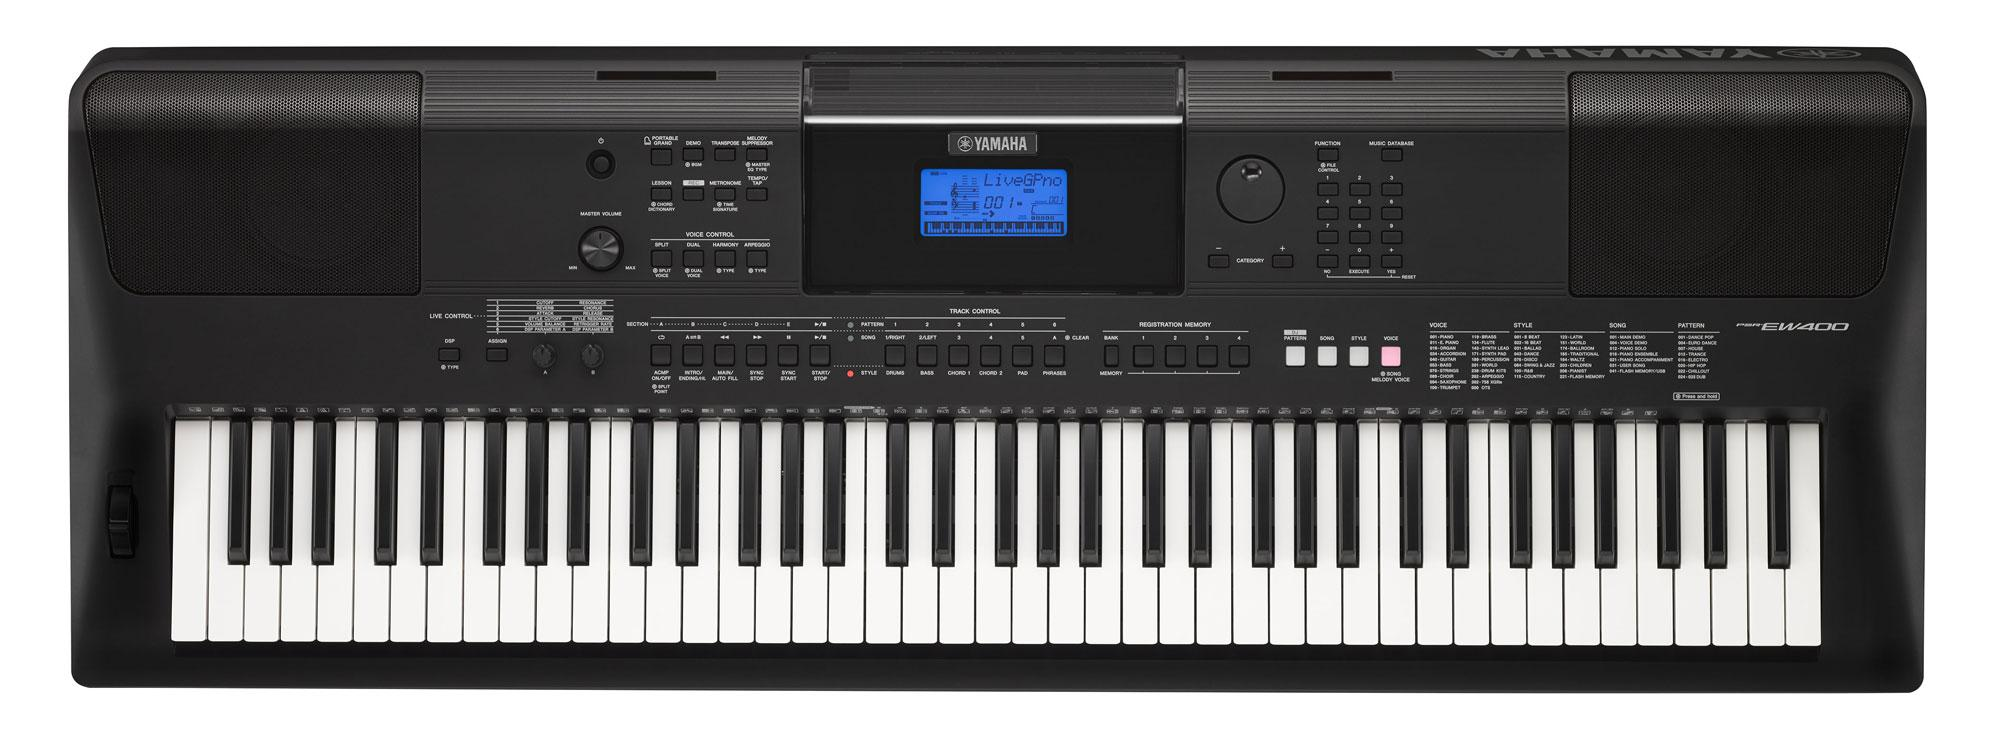 yamaha psr ew 400 keyboard mit 76 tasten set mit st nder. Black Bedroom Furniture Sets. Home Design Ideas